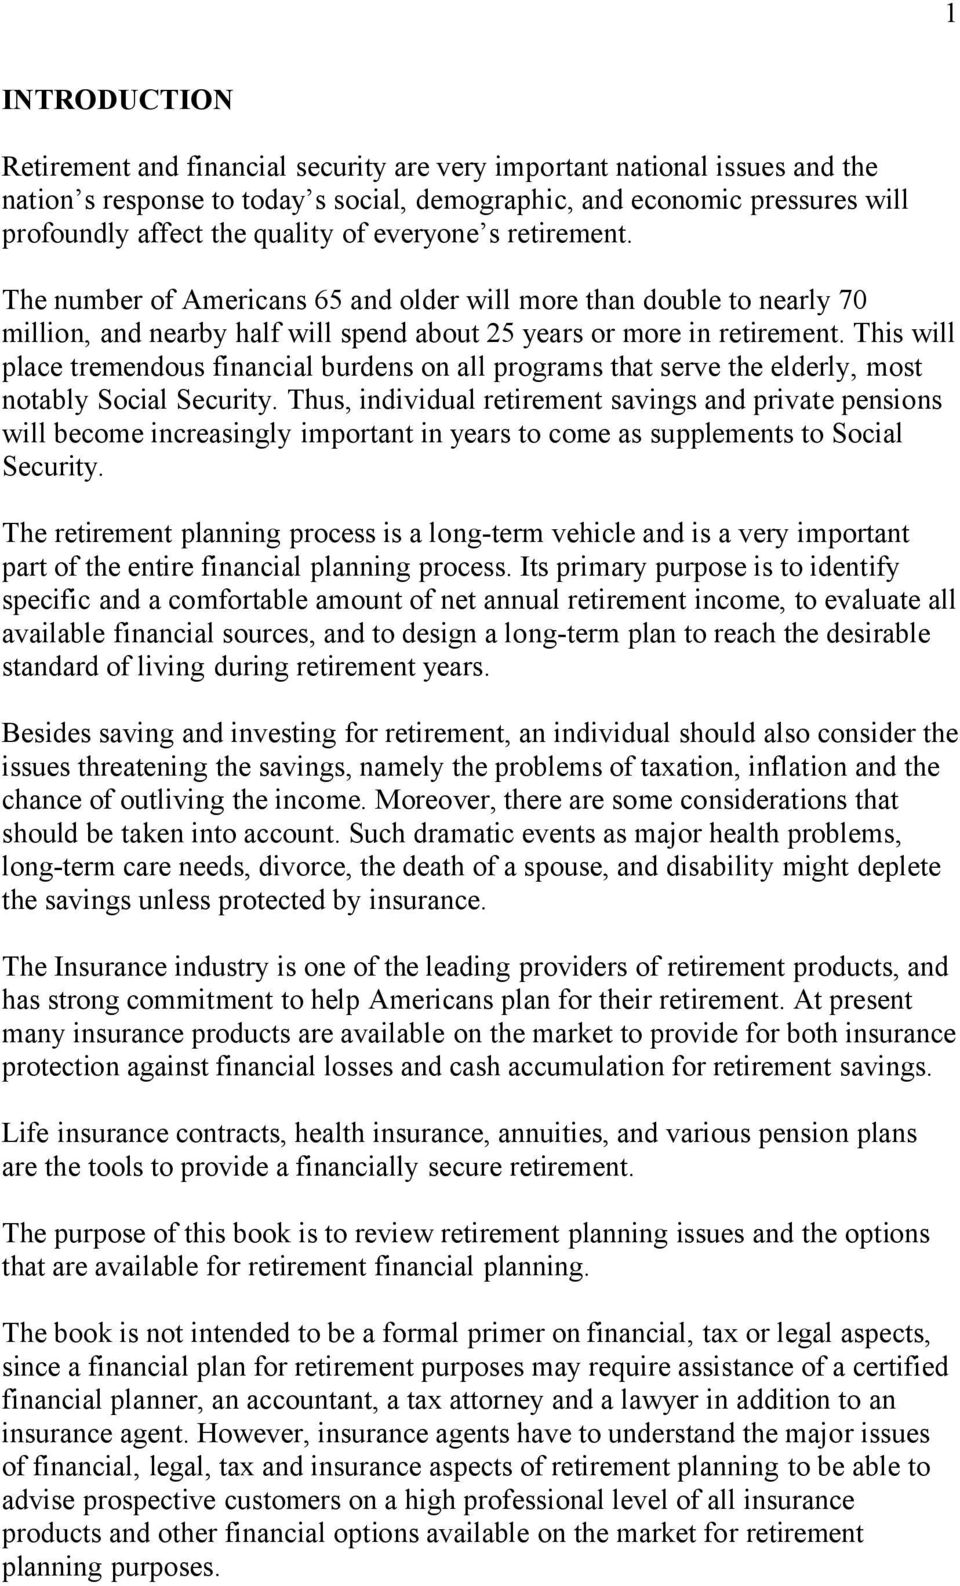 ANNUITIES AND PENSION PLANS - PDF